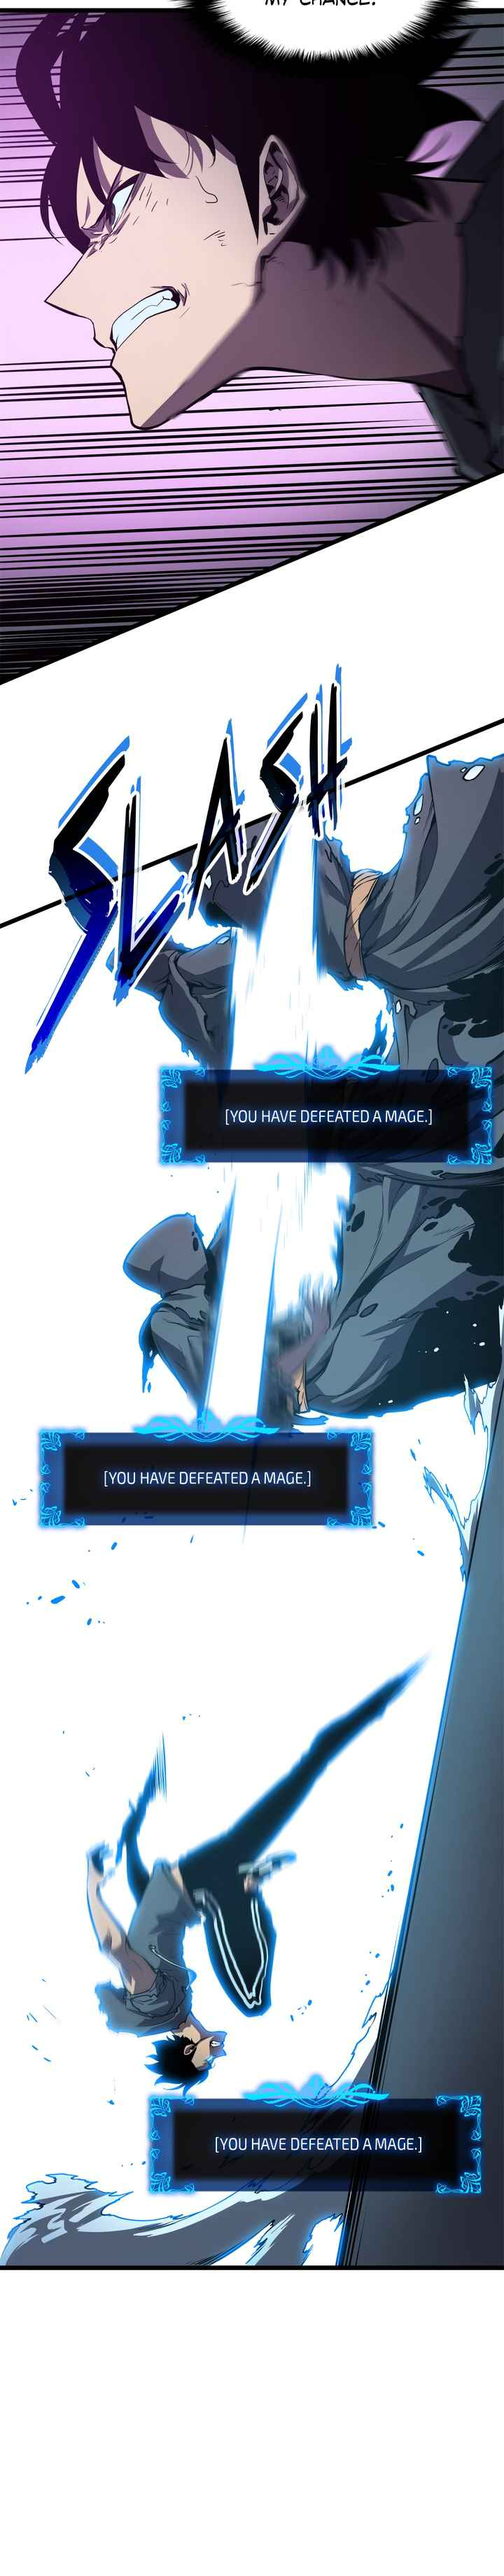 Solo Leveling Chapter 44 Page 19